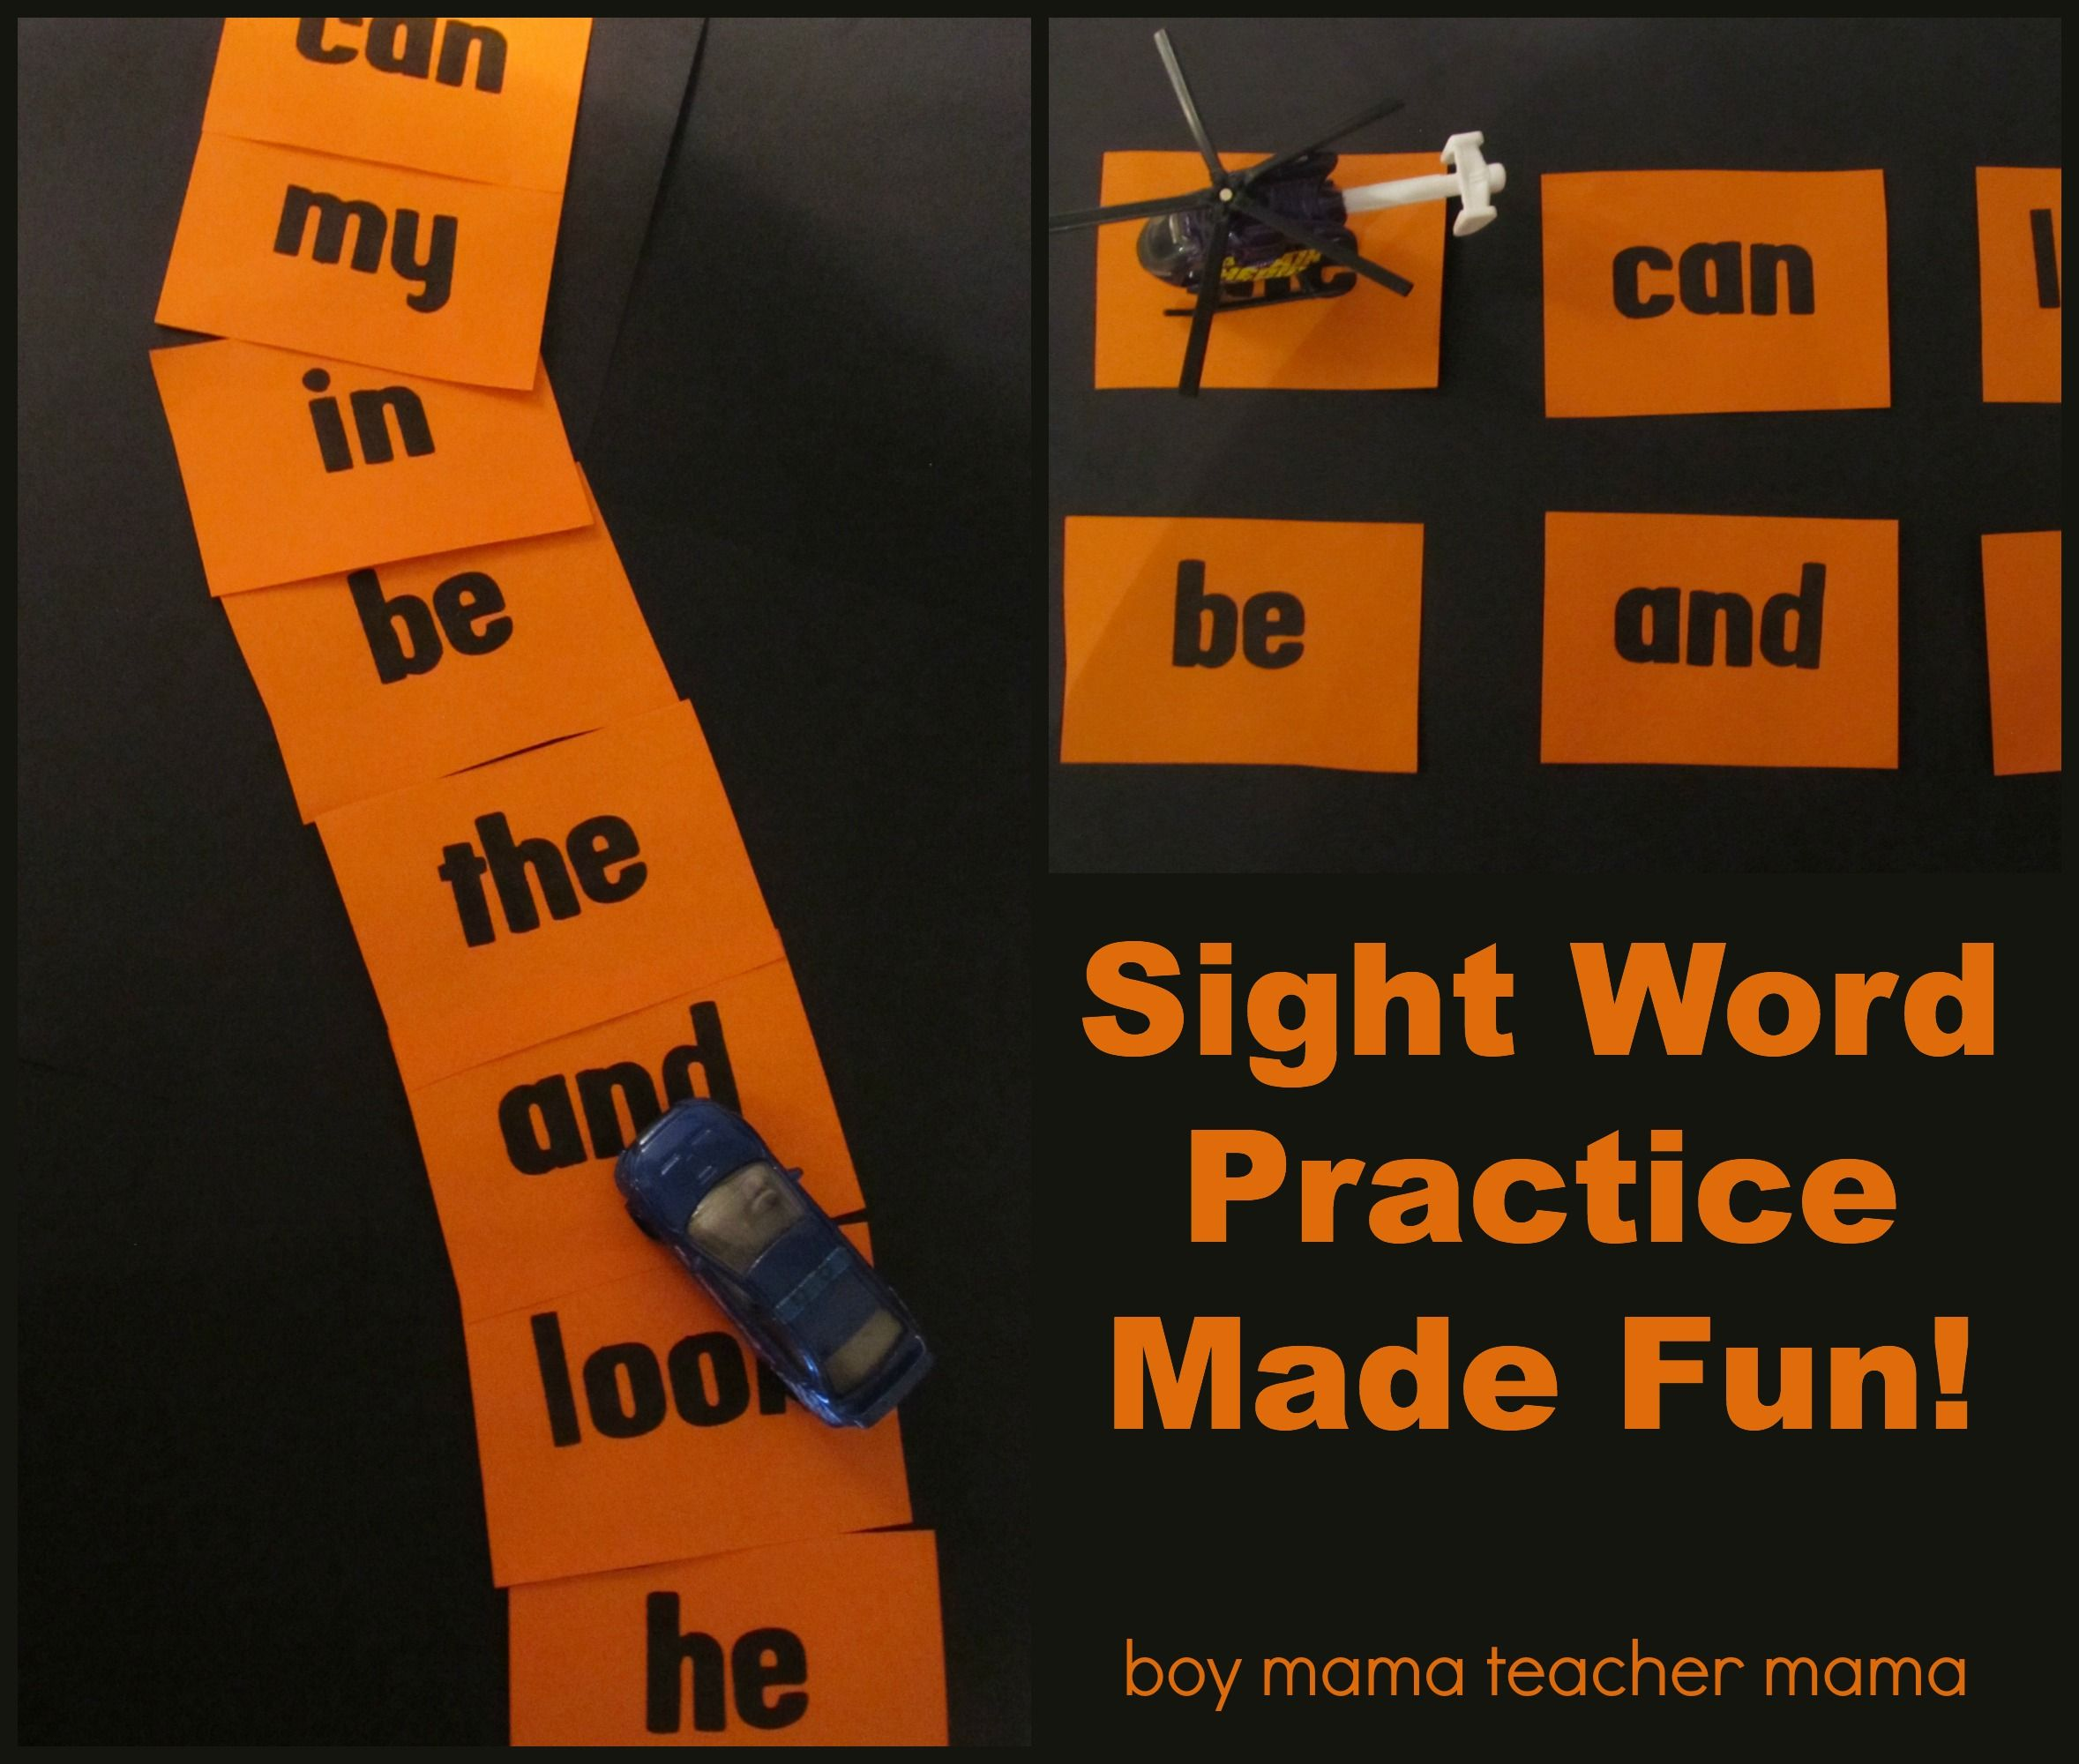 Teacher Mama: Sight Word Practice Made Fun (With Images